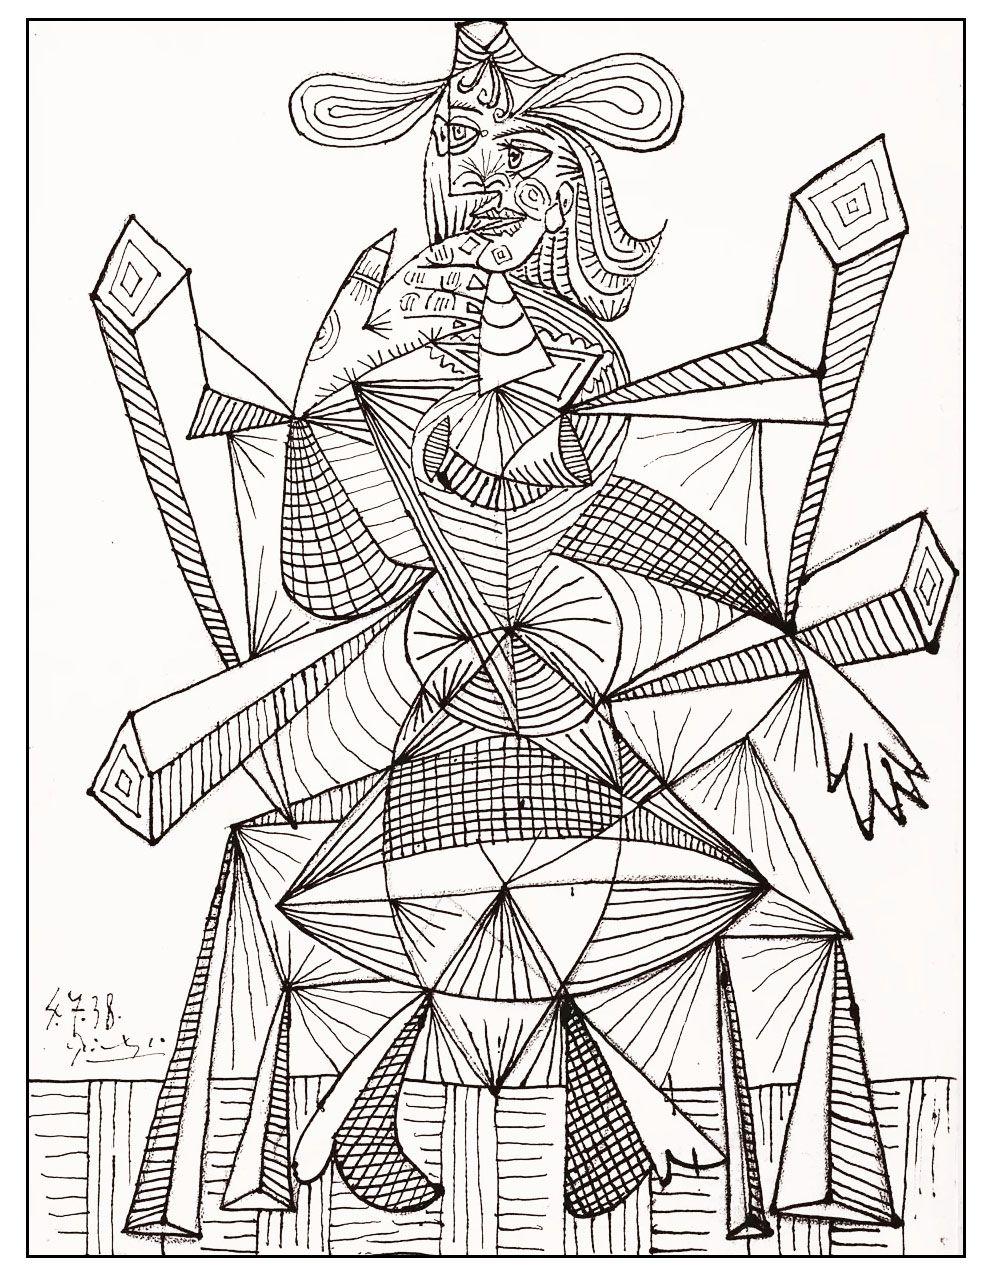 free coloring page coloring adult drawing by picasso 1938 a drawing by the great pablo picasso perfect for an artistic coloring page